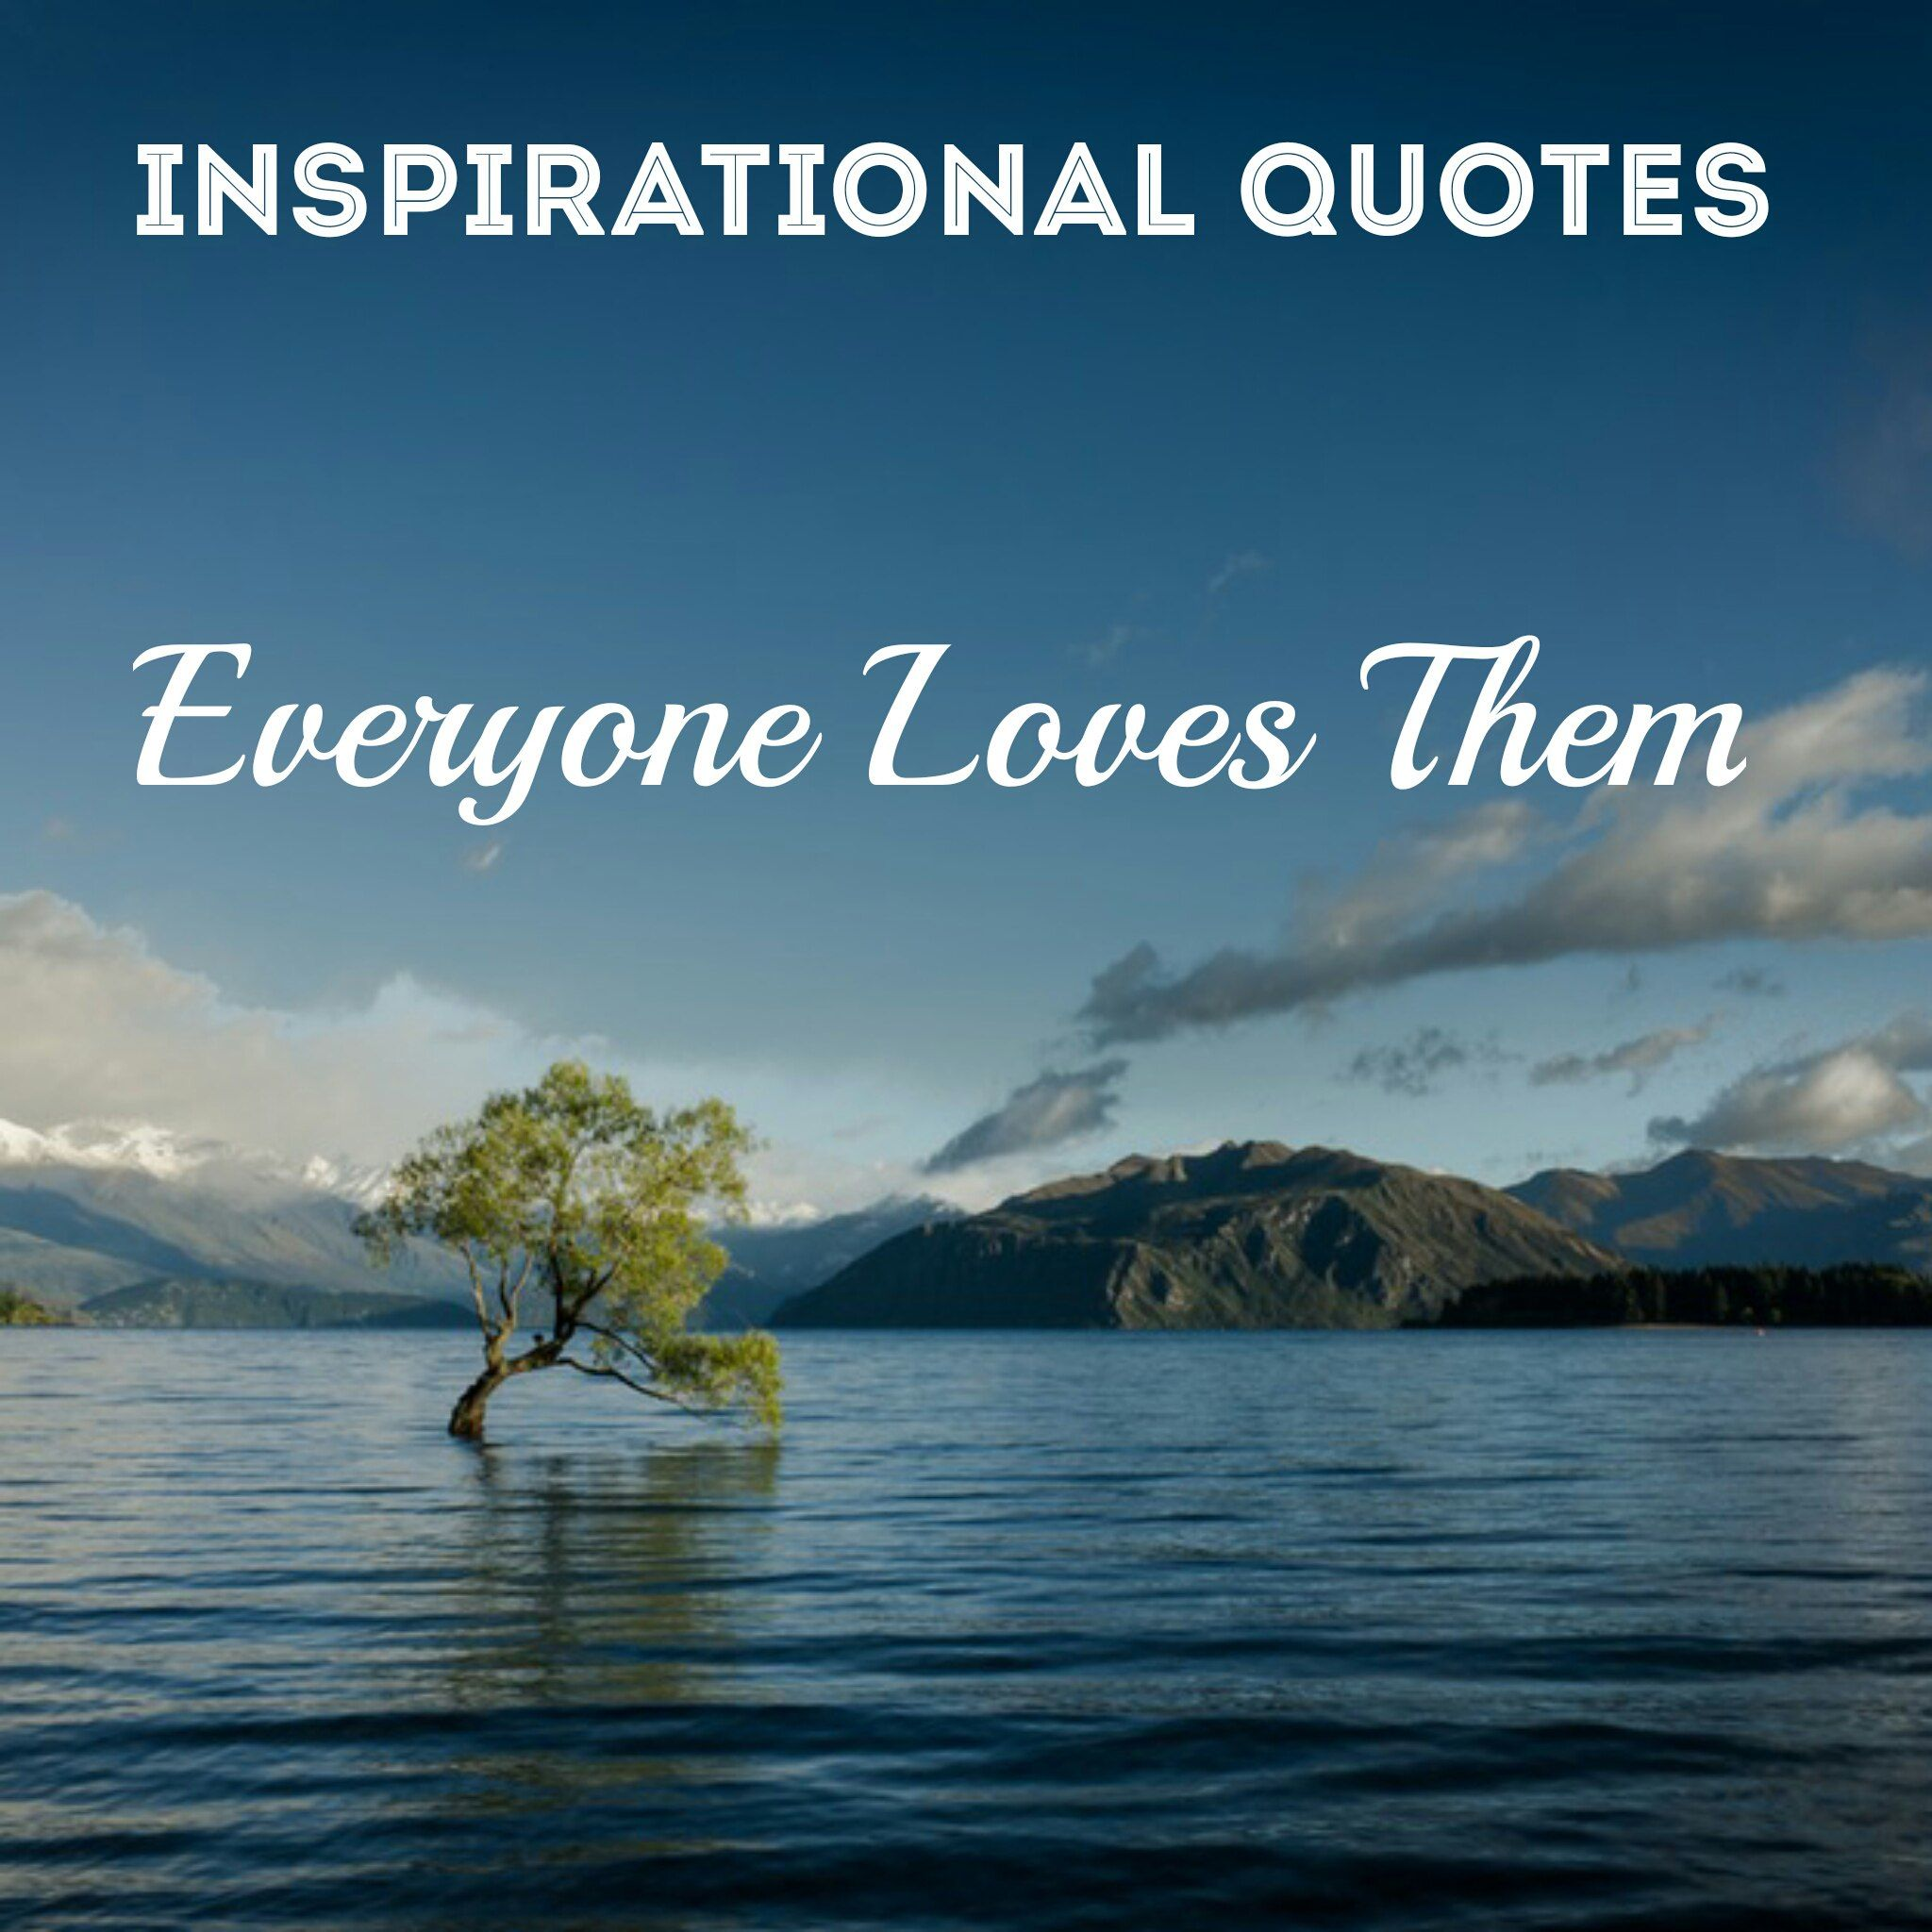 Life Quotes Inspiration 154 Best Inspirational Quotes & Sayings Of All Time